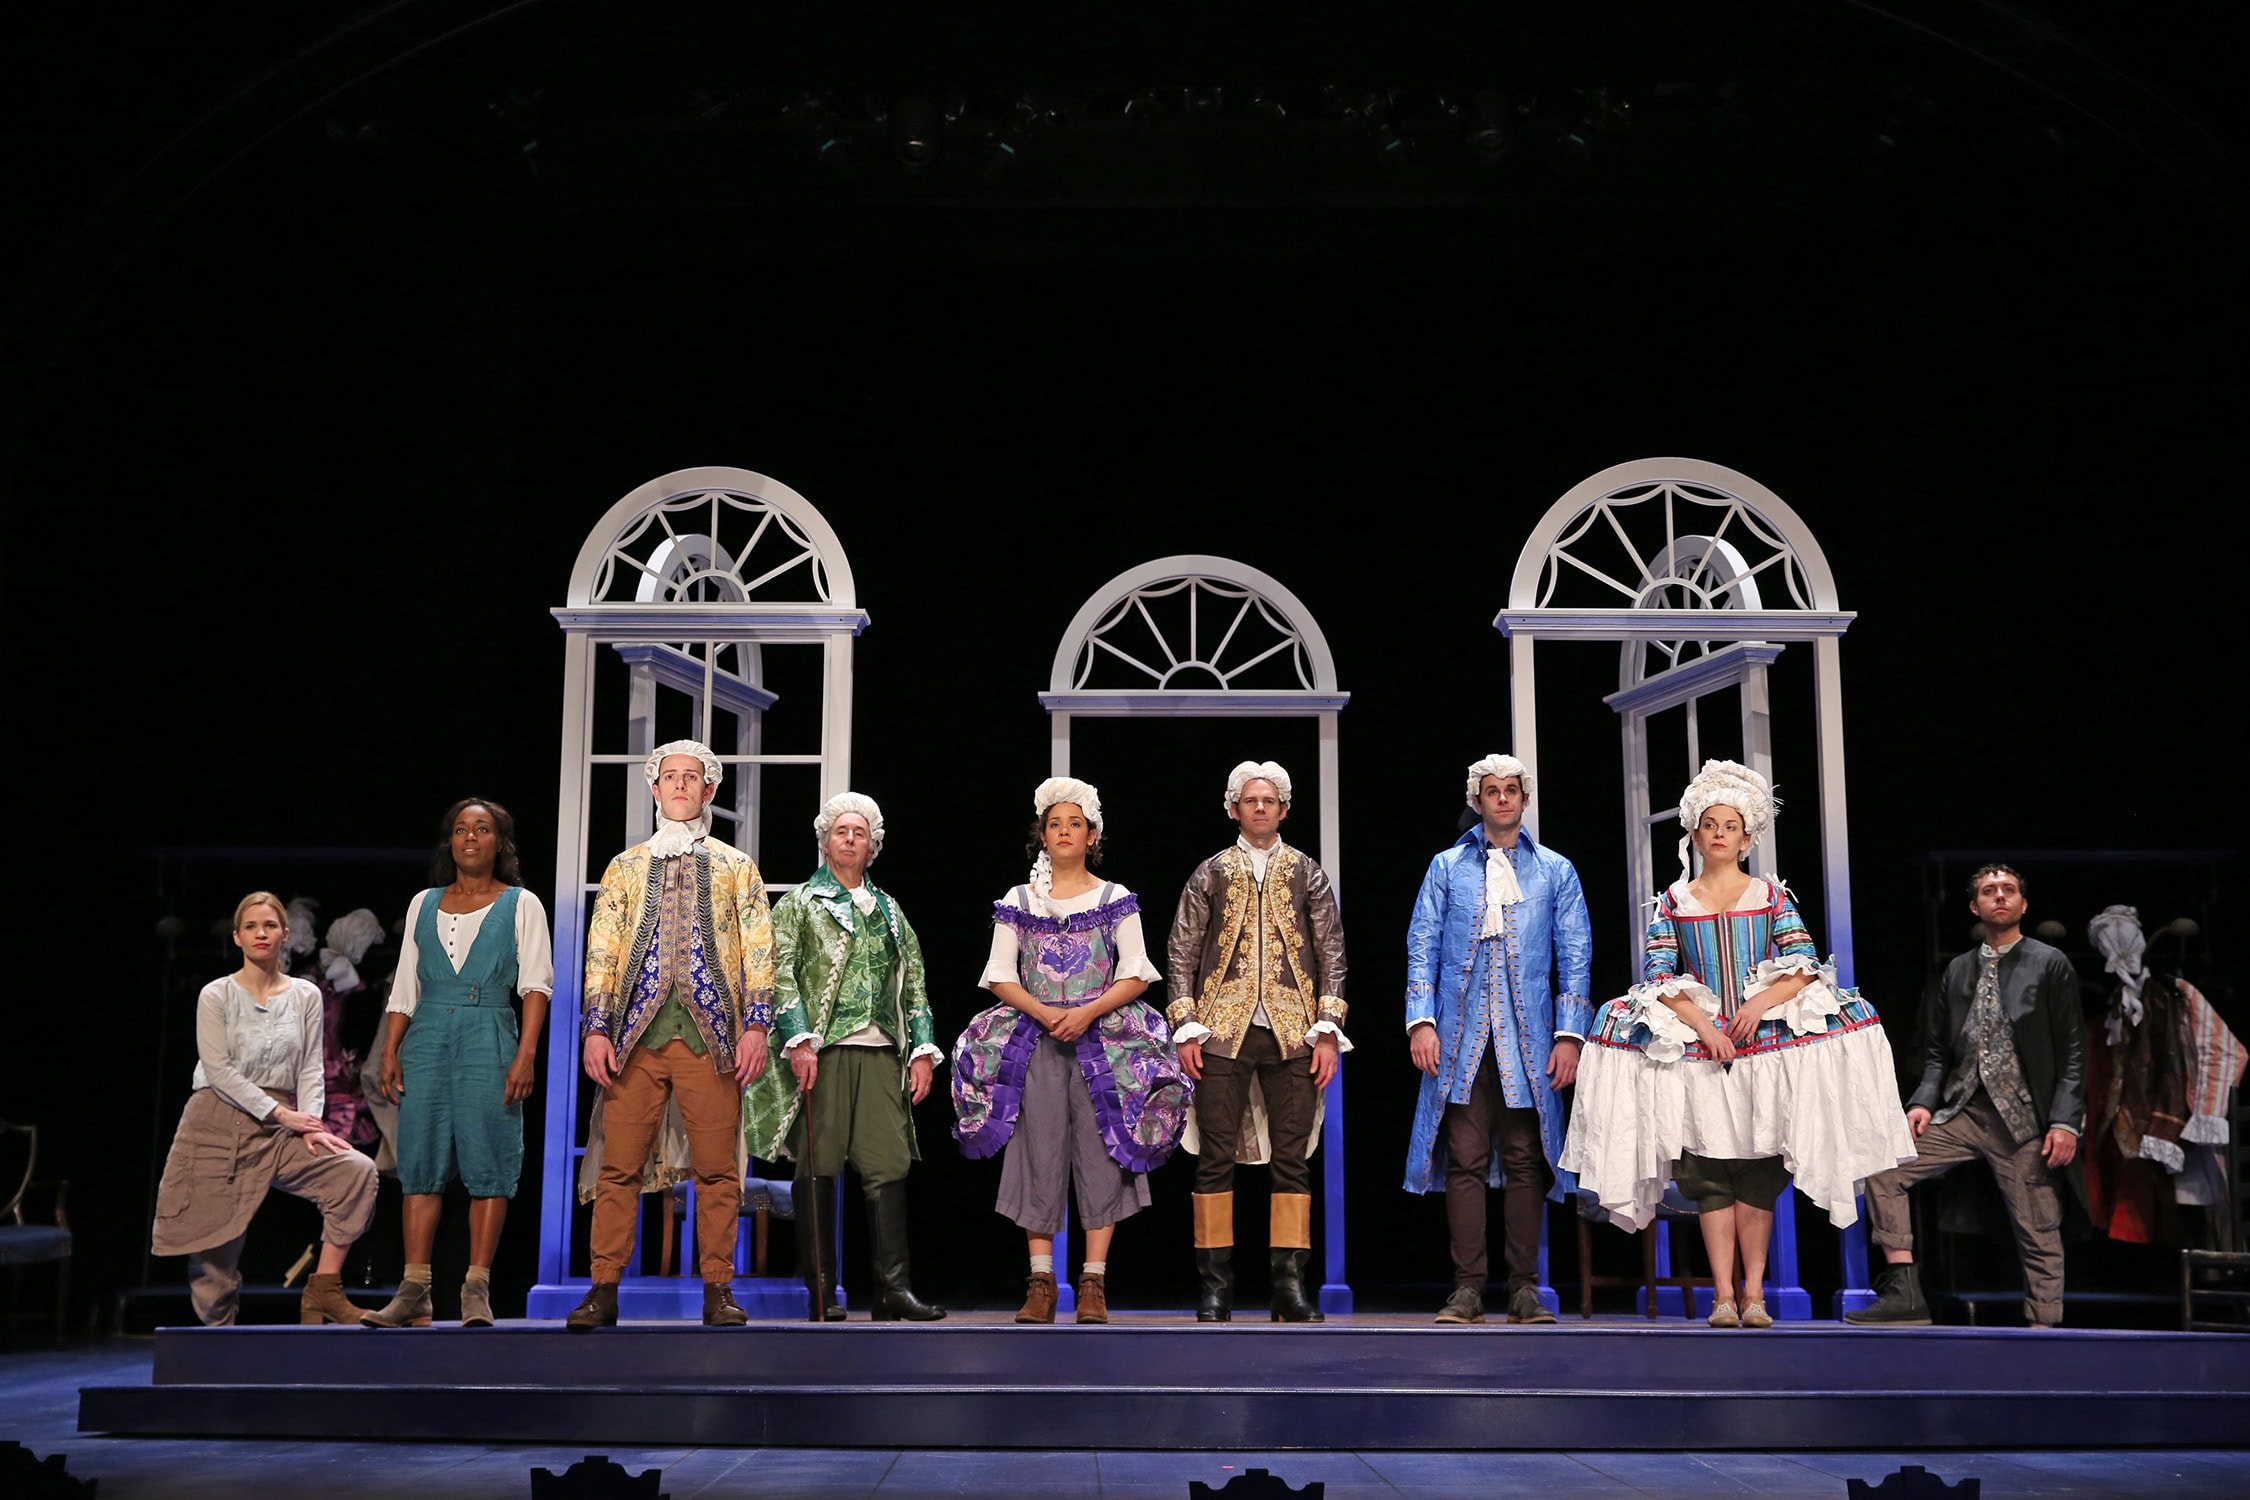 The cast of Jefferson's Garden. Photo by Carol Rosegg.